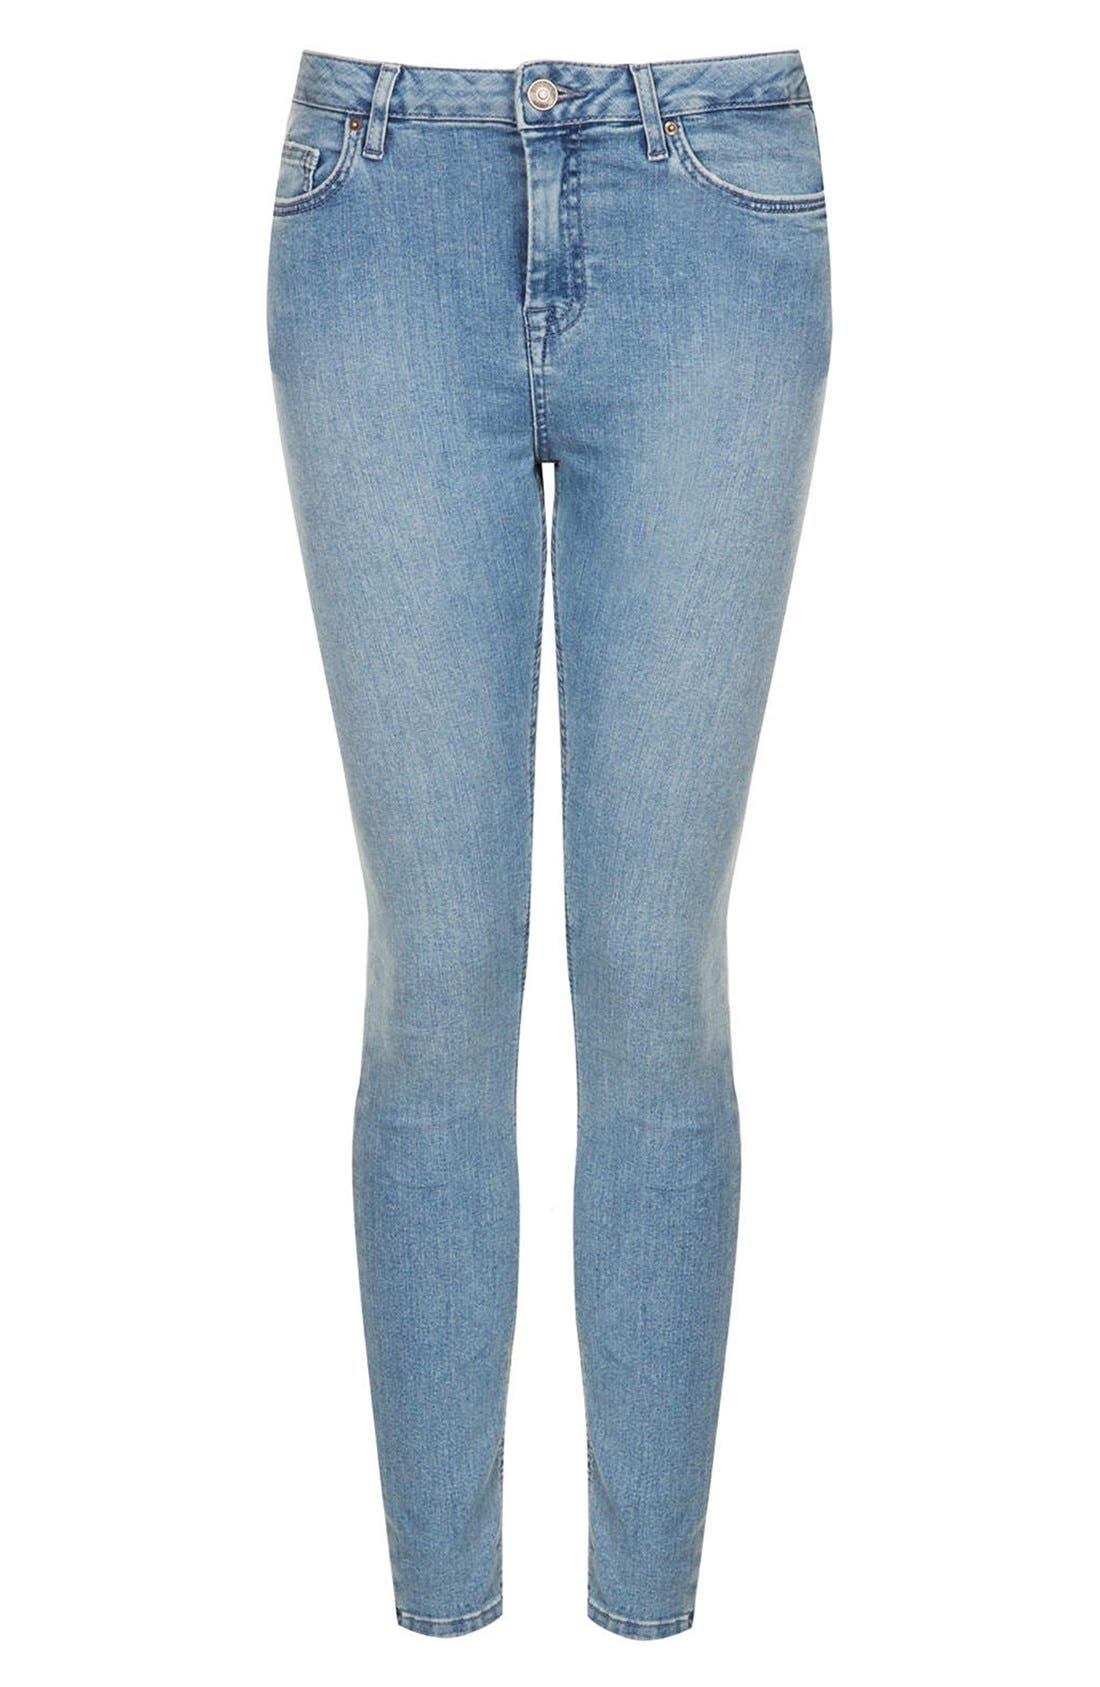 Alternate Image 3  - Topshop Moto 'Jamie' High Rise Skinny Jeans (Mid Stone)